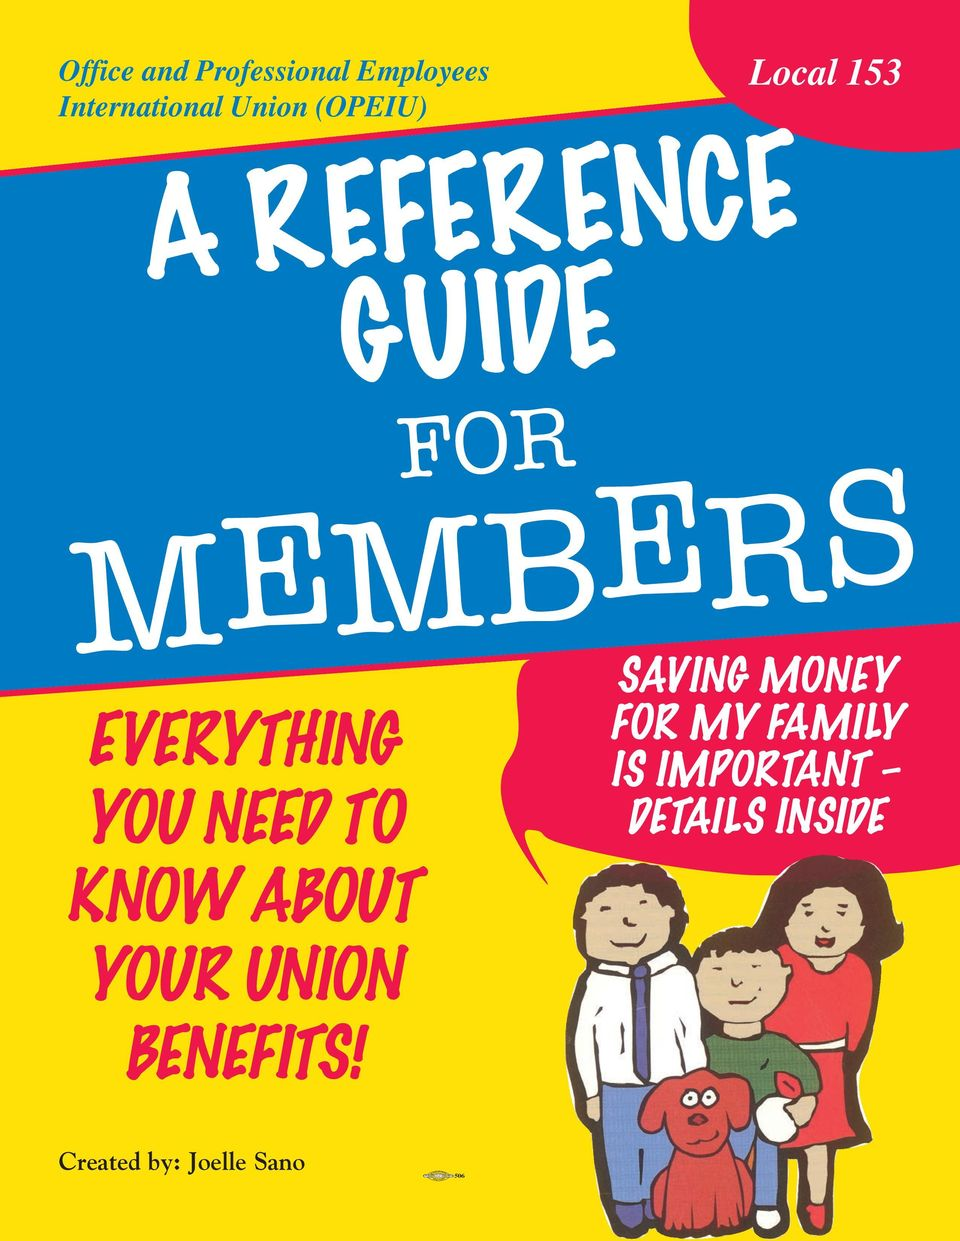 GUIDE FOR MEMBERS EVERYTHING YOU NEED TO SAVING MONEY FOR MY FAMILY IS